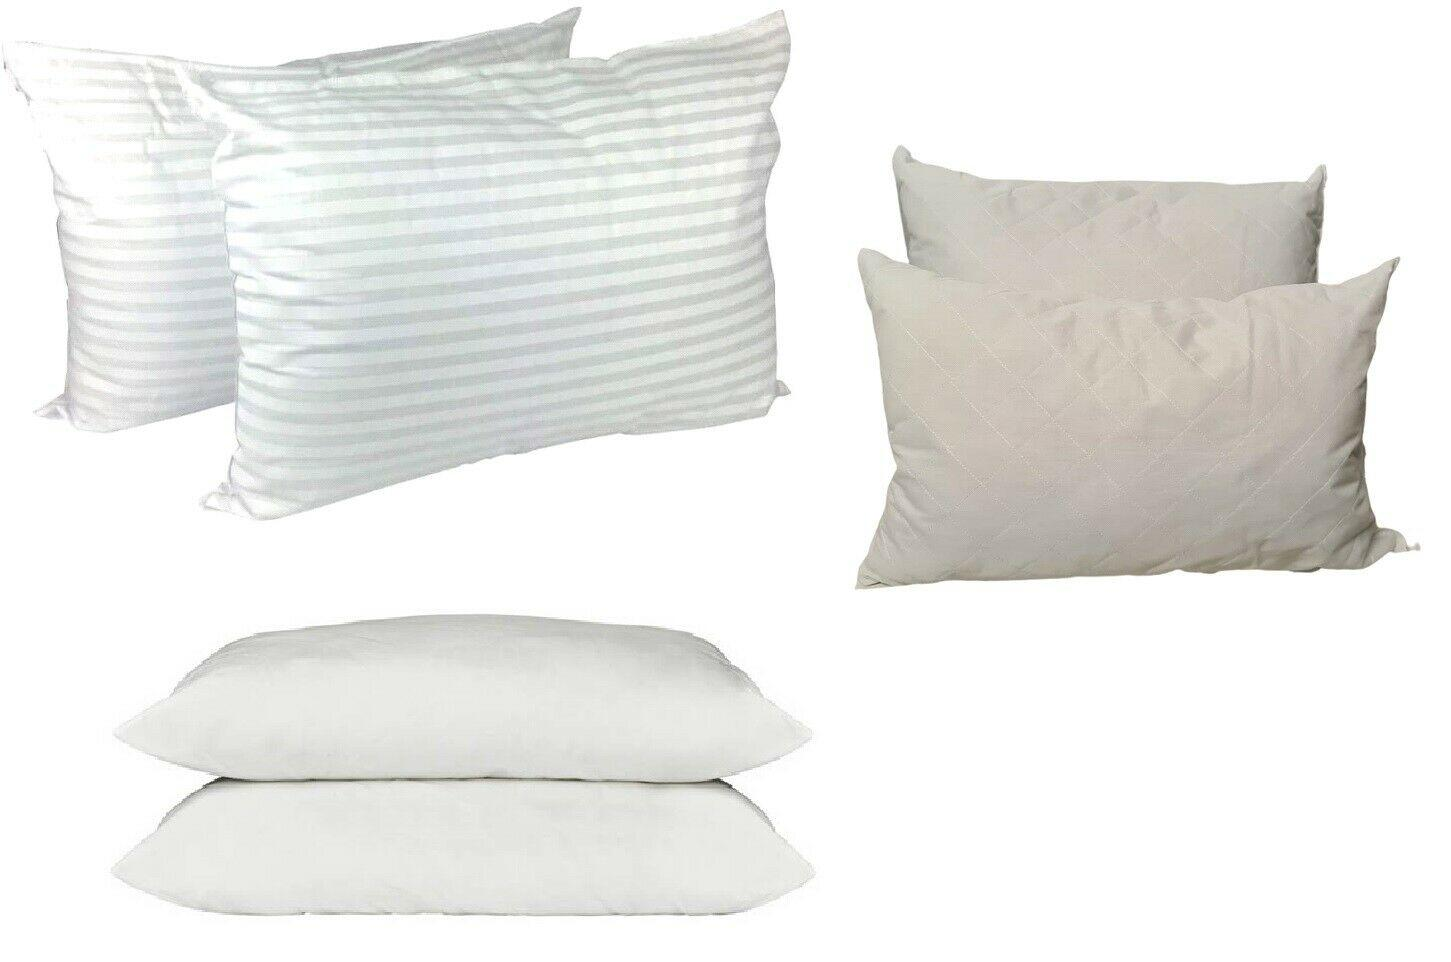 Supersoft Washable Pair of Firm Pillows